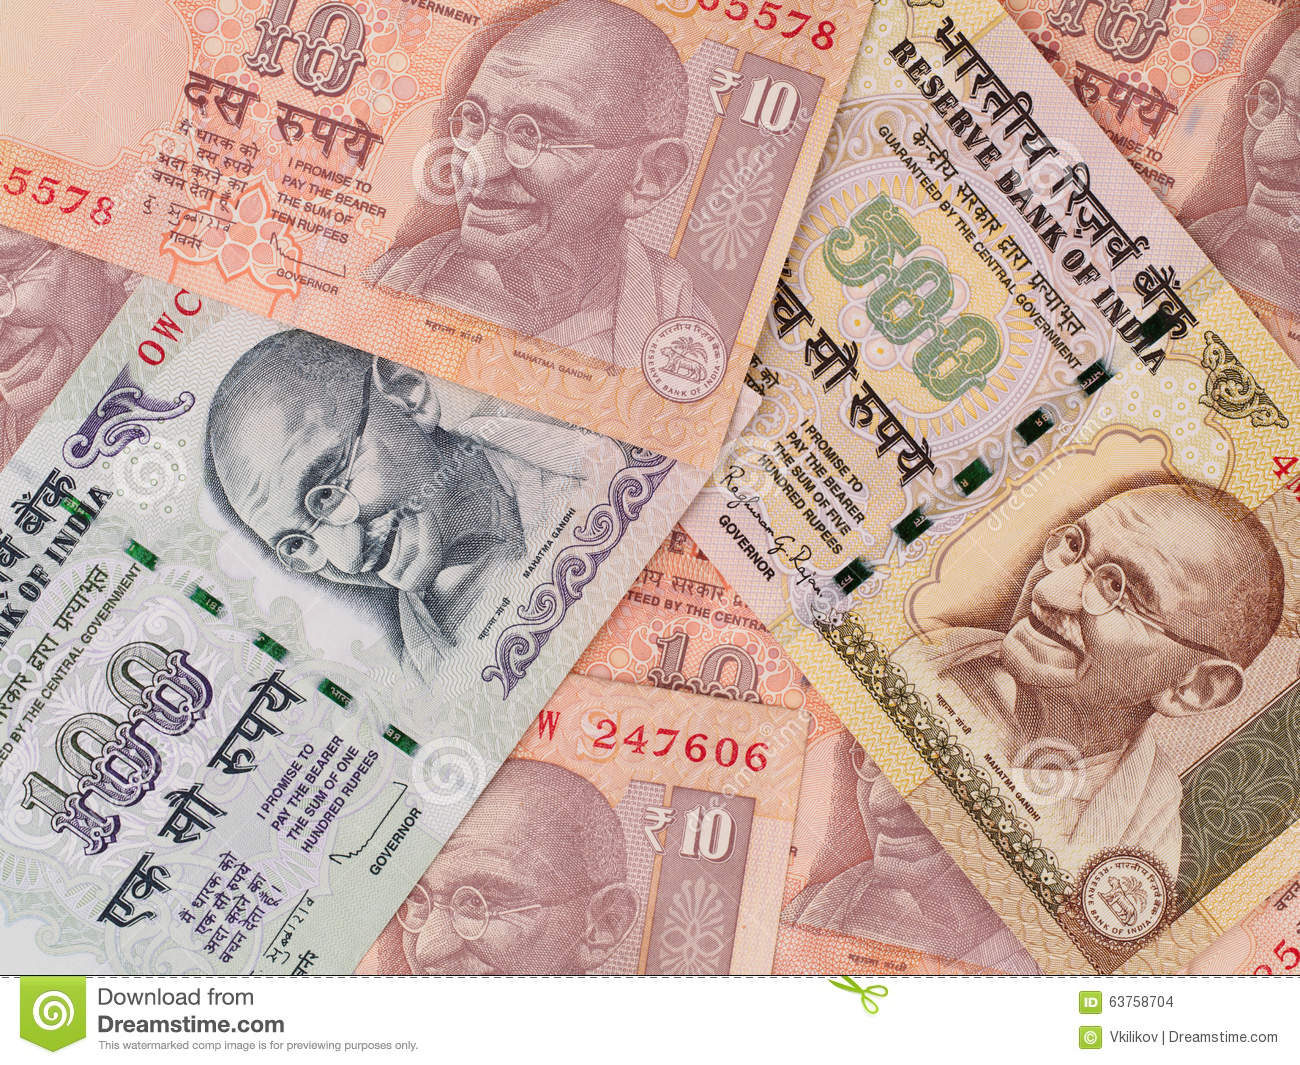 commerce indian rupee Find great deals on ebay for indian rupee in indian currency shop with confidence.